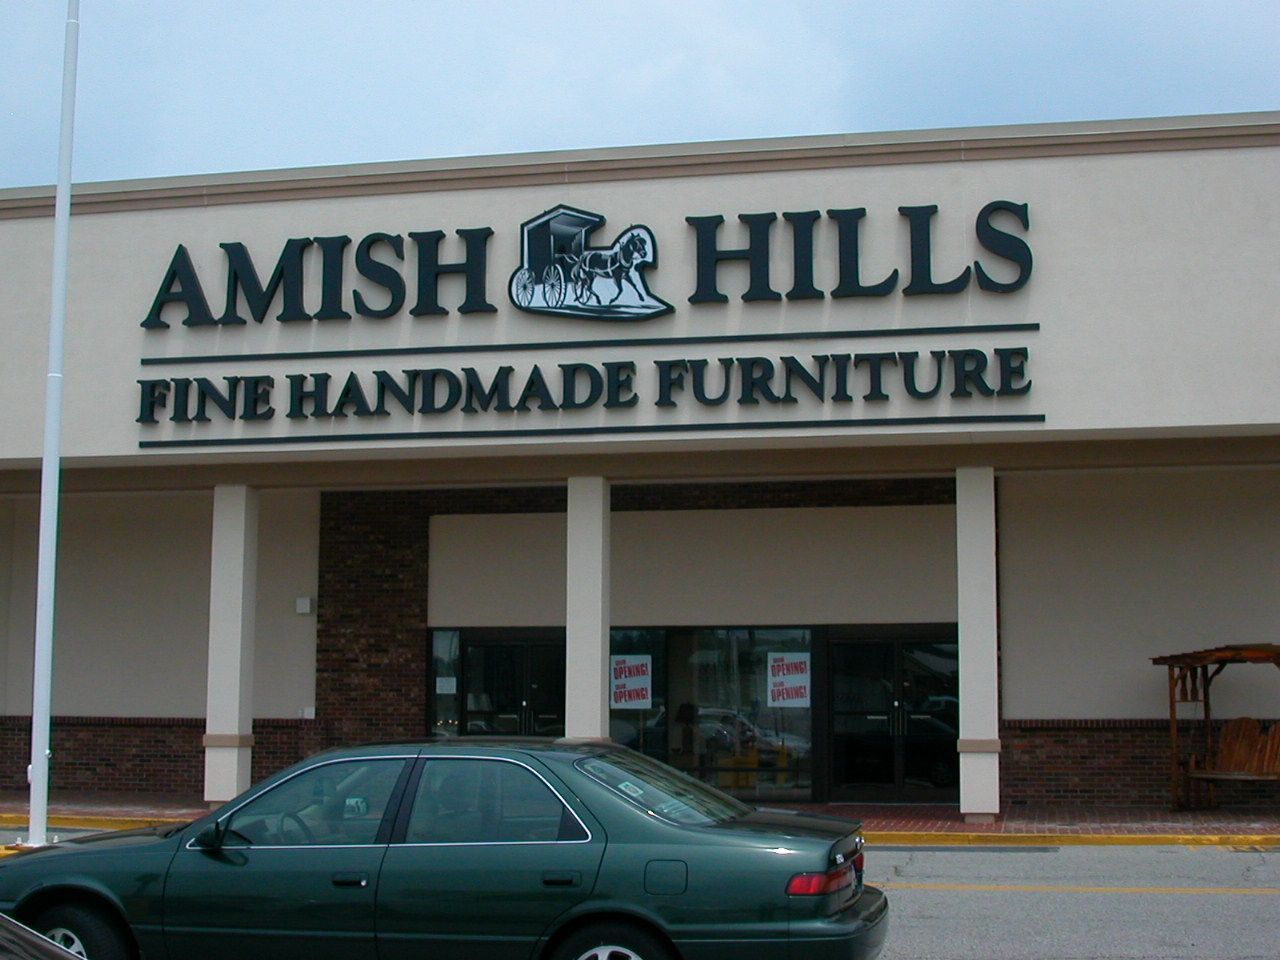 Amish Hills Fine Handmade Furniture Channel Letters Located In Louisville Ky Amishhillsfurniture Businesssigns